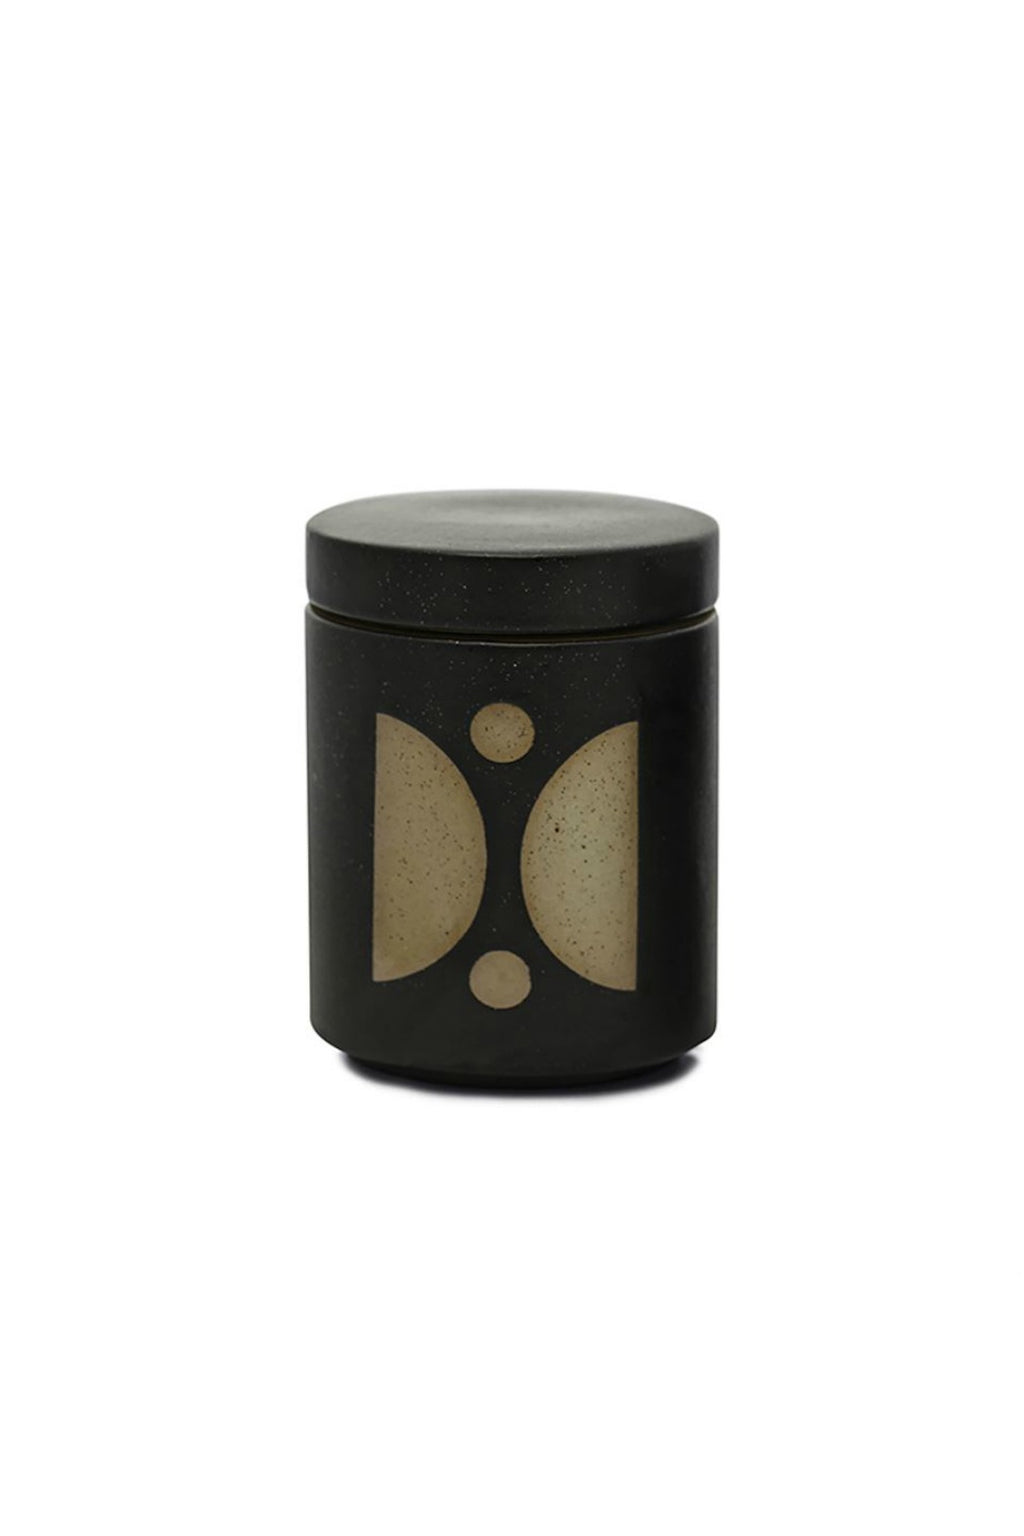 FORM 12 OZ BLACK GLAZED CERAMIC WITH LID - PALO SANTO SUEDE